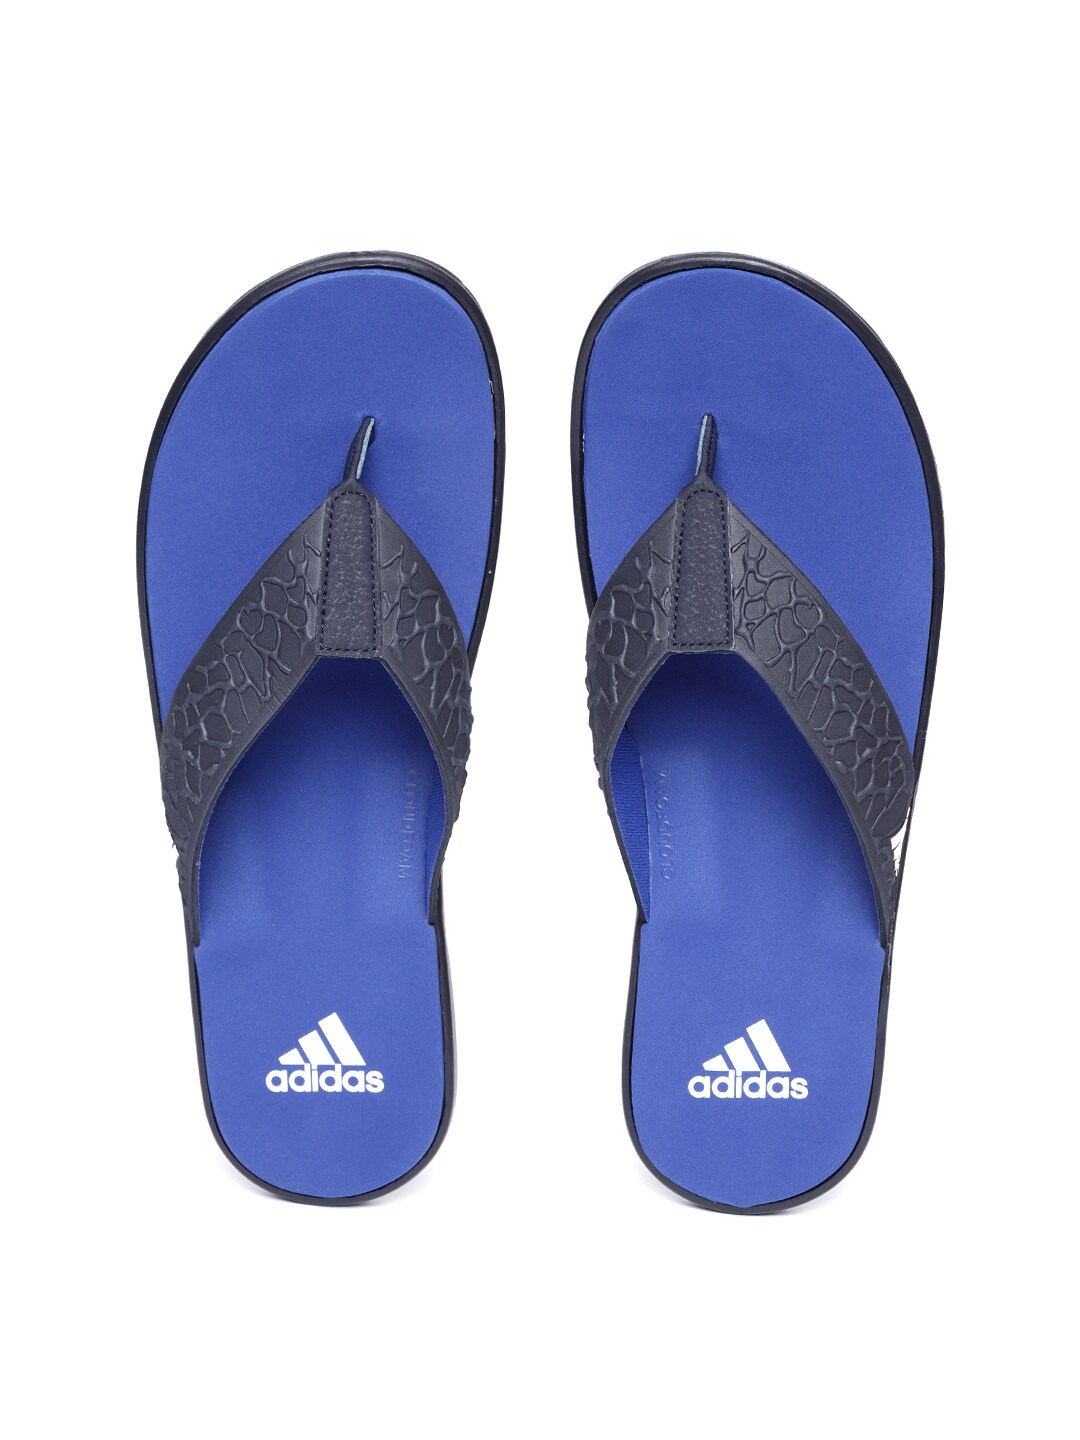 f751b90a7831 Men s Adidas Flip Flops - Buy Adidas Flip Flops for Men Online in India